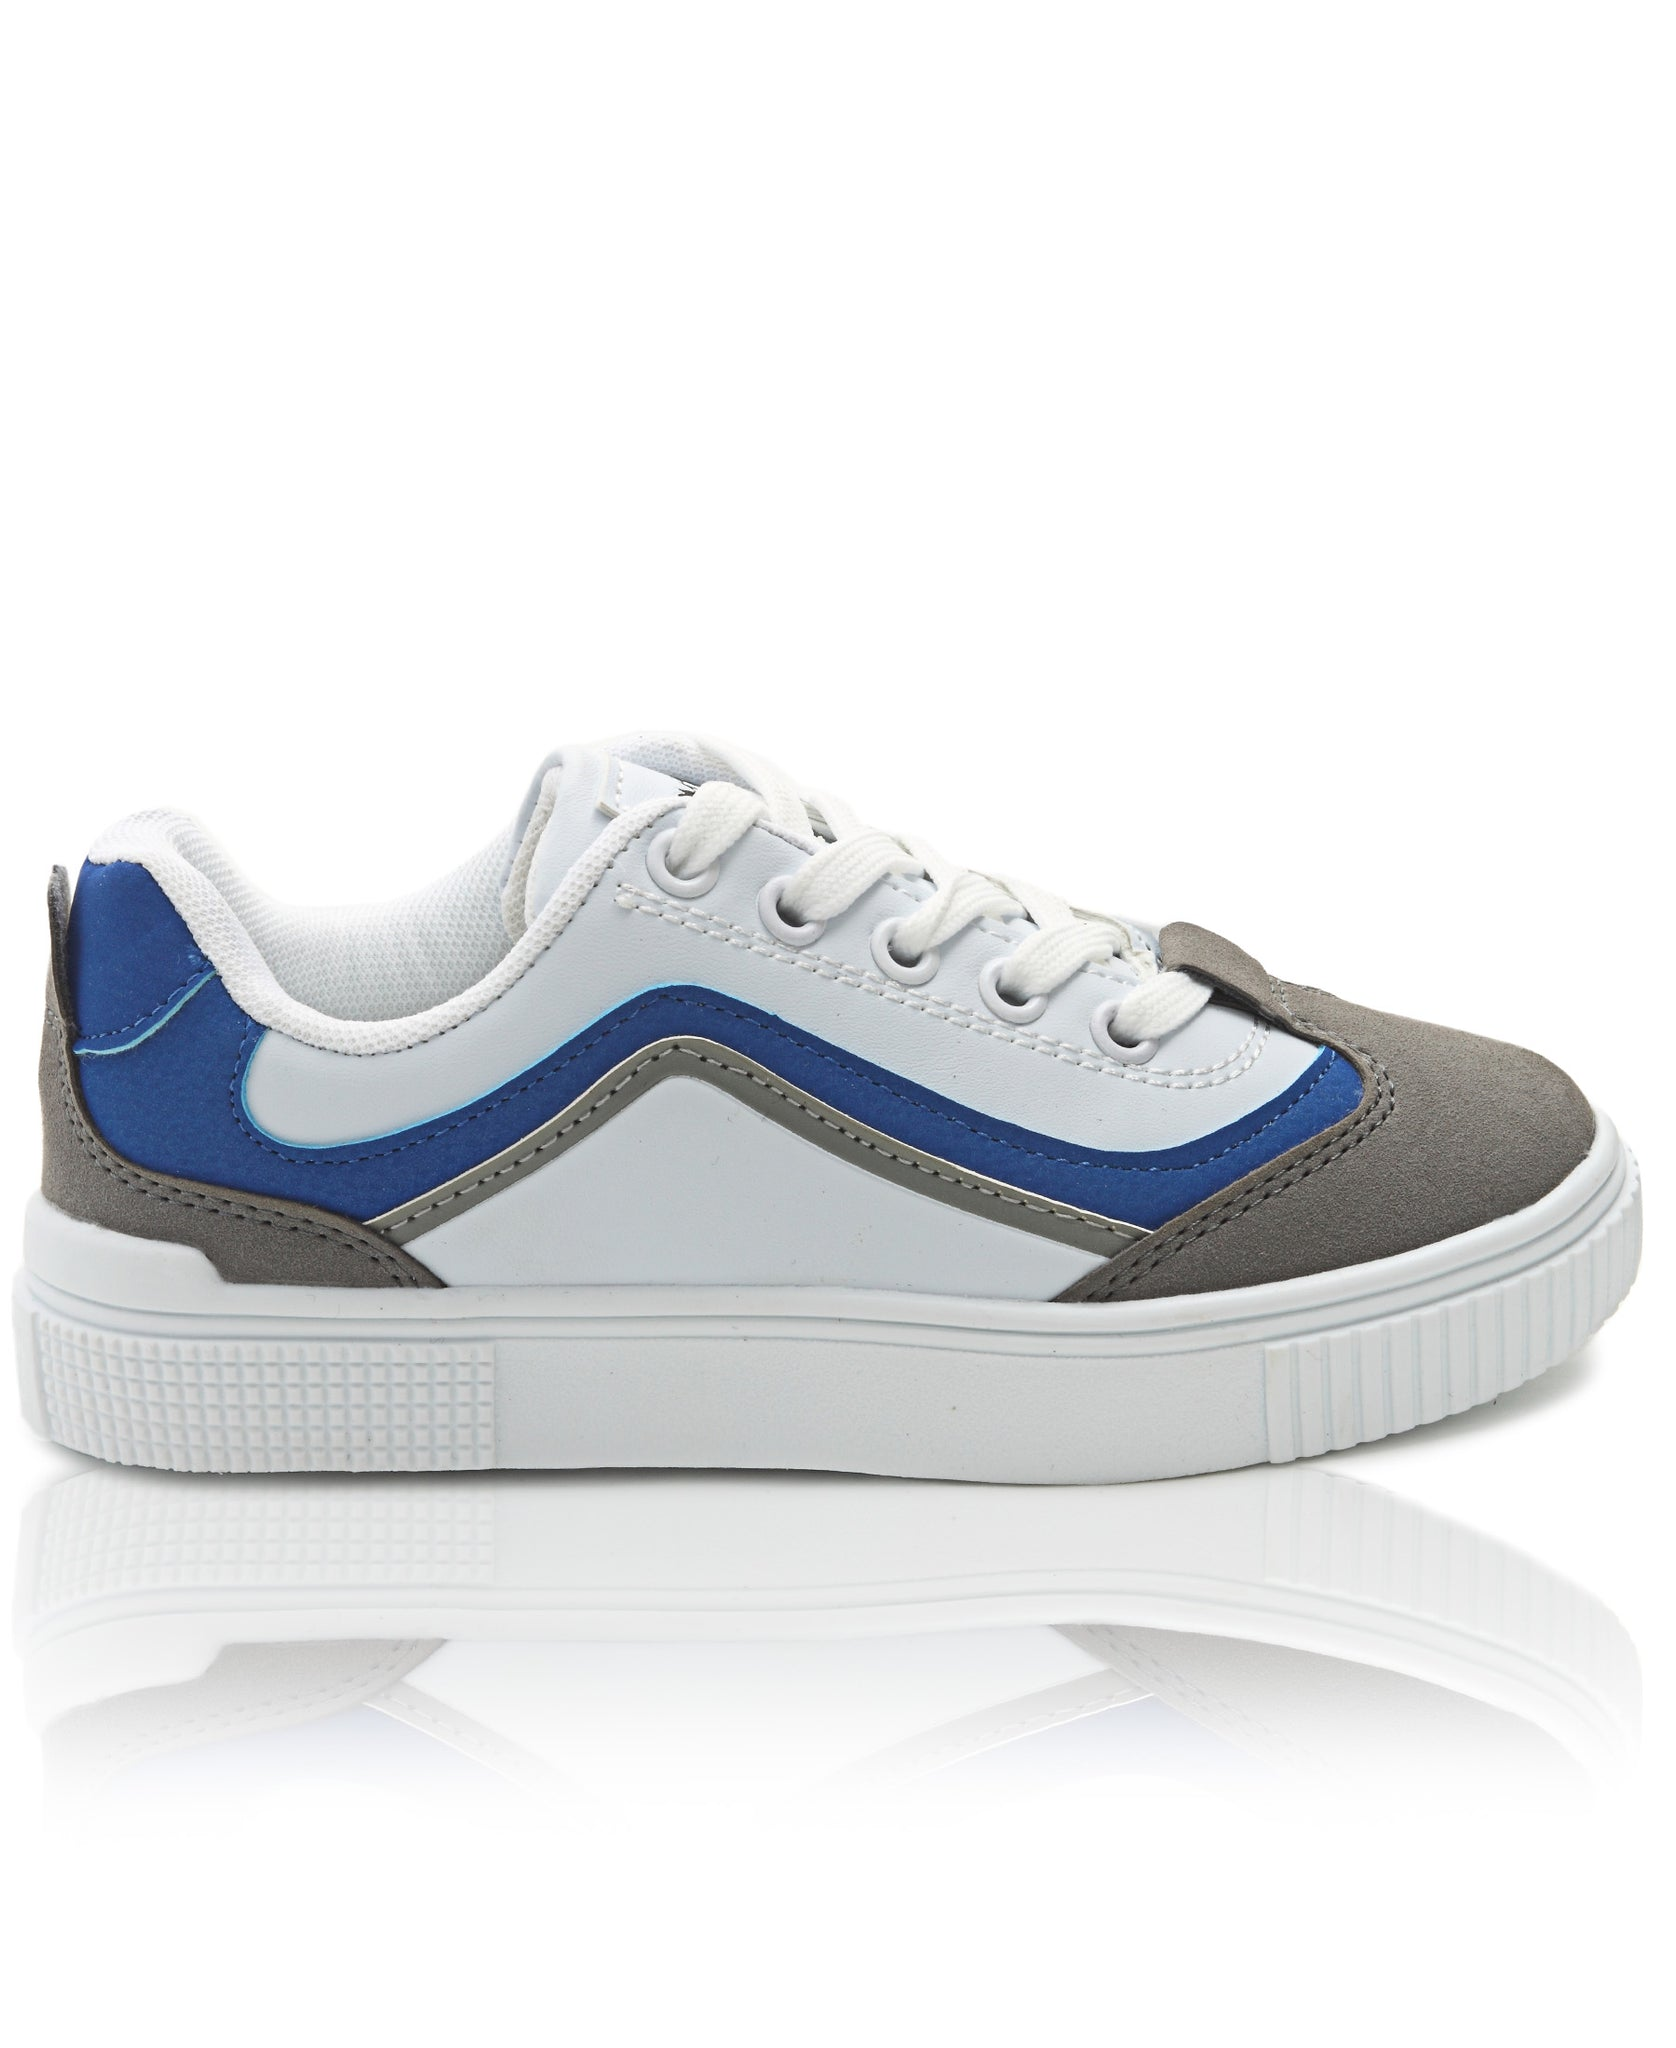 Youth Smooth Sneakers - Blue